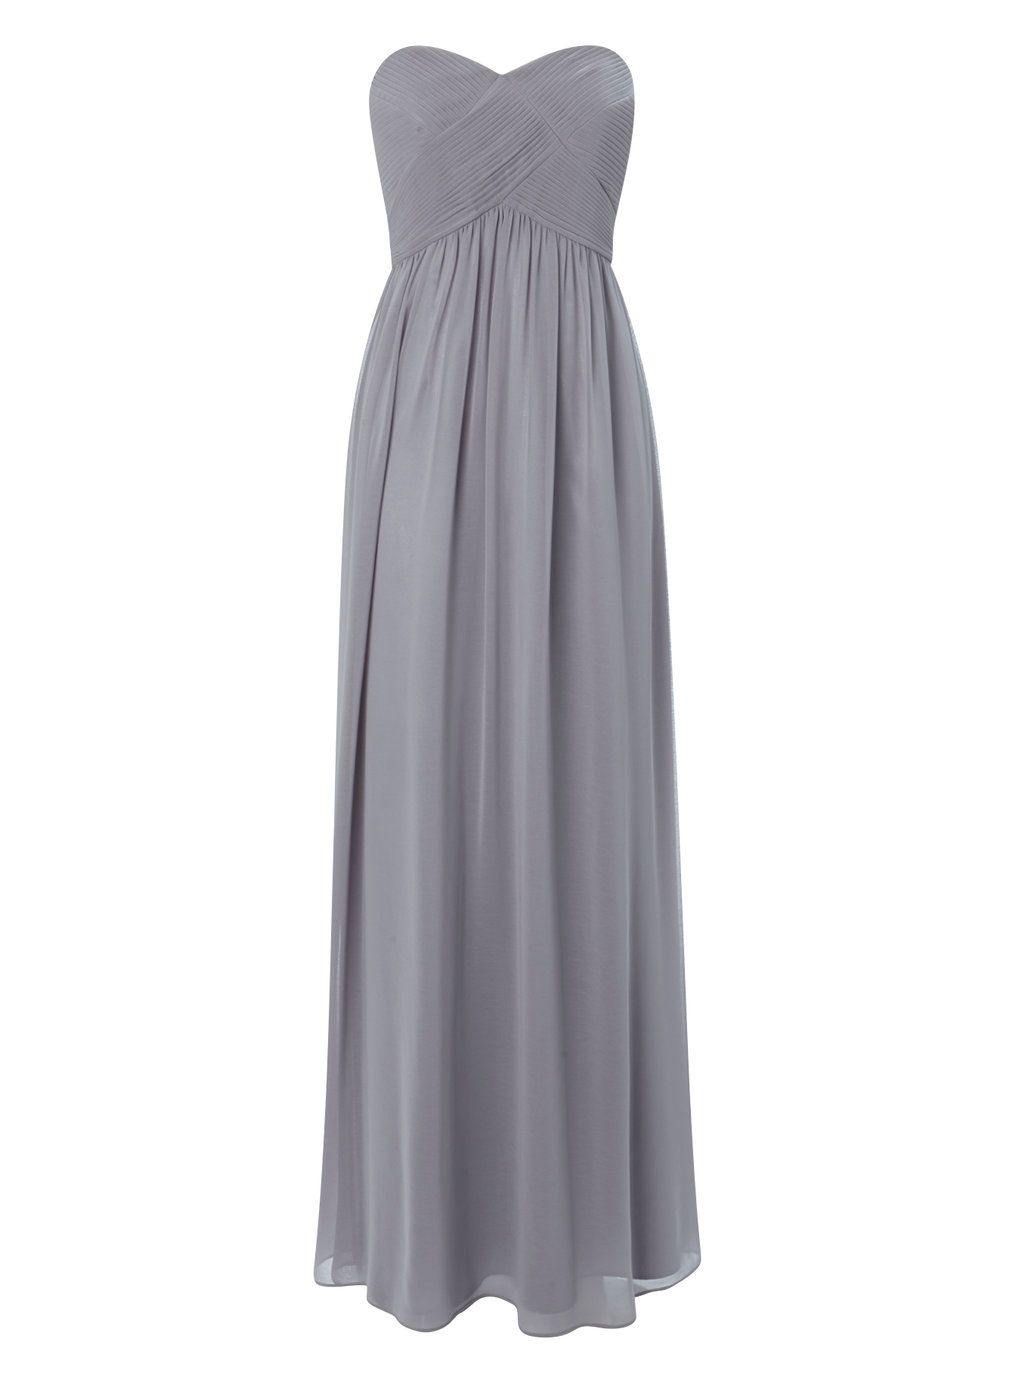 Pewter darcy long bridesmaid dress staceyus wedding pinterest